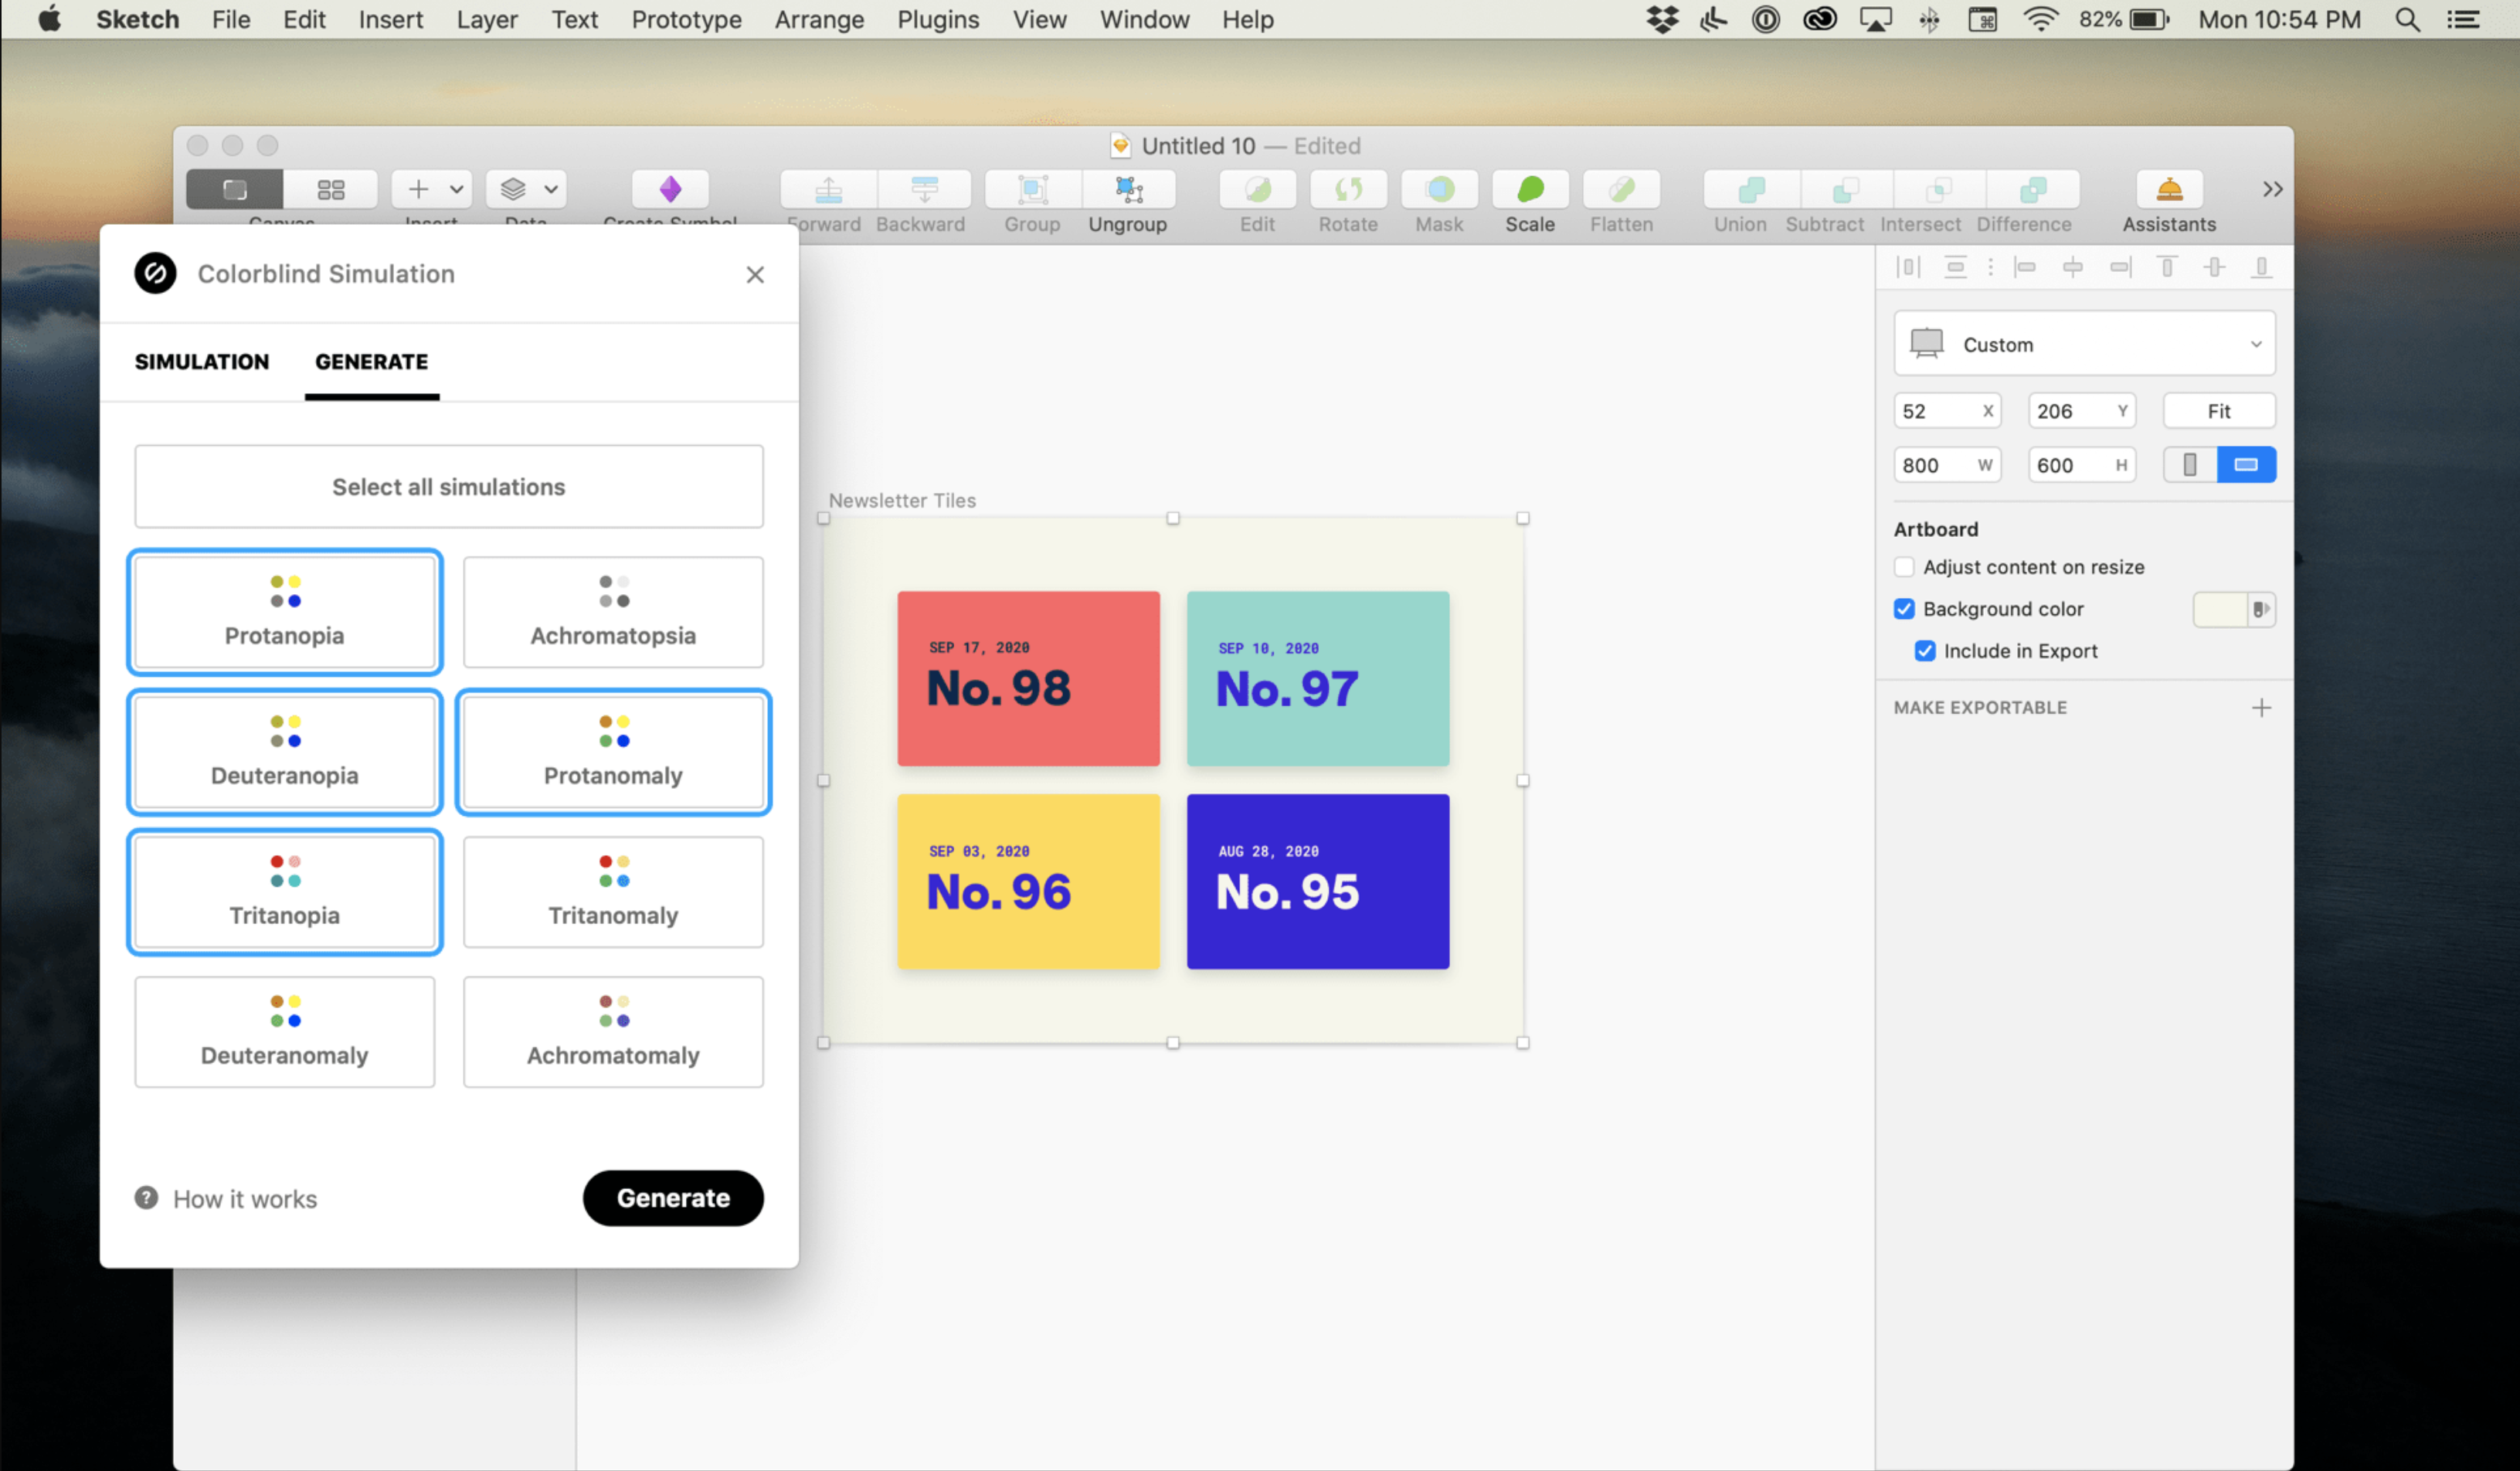 Stark, a plugin for the design software Sketch, it shows different types of colorblindness